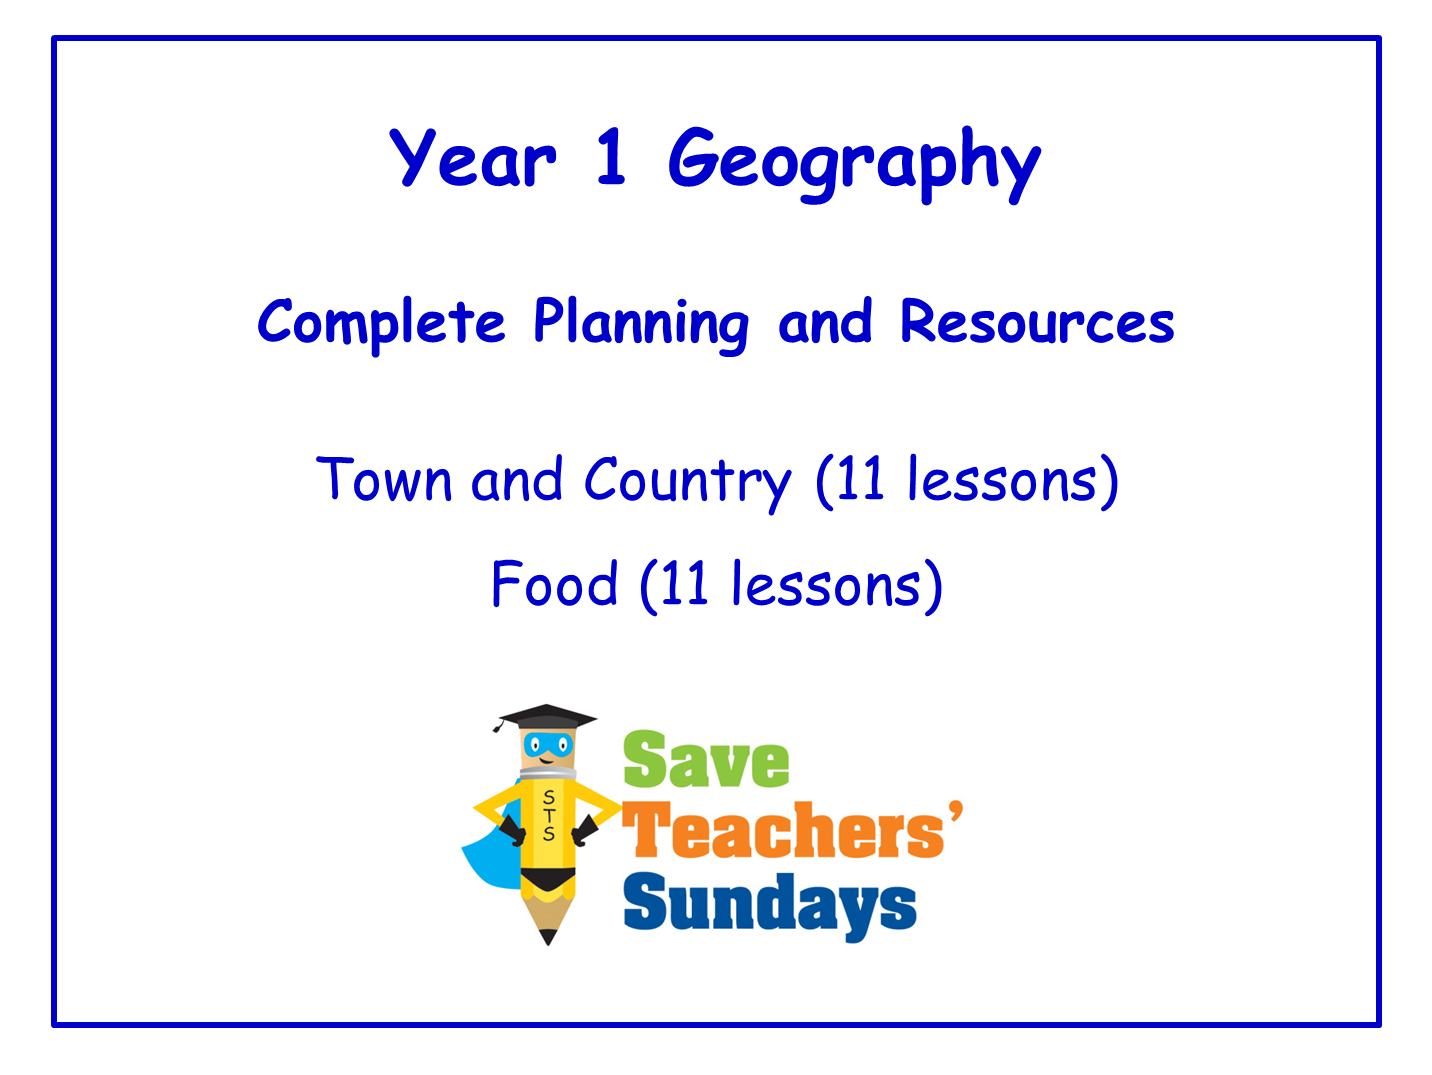 Year 1 Geography Planning and Resources